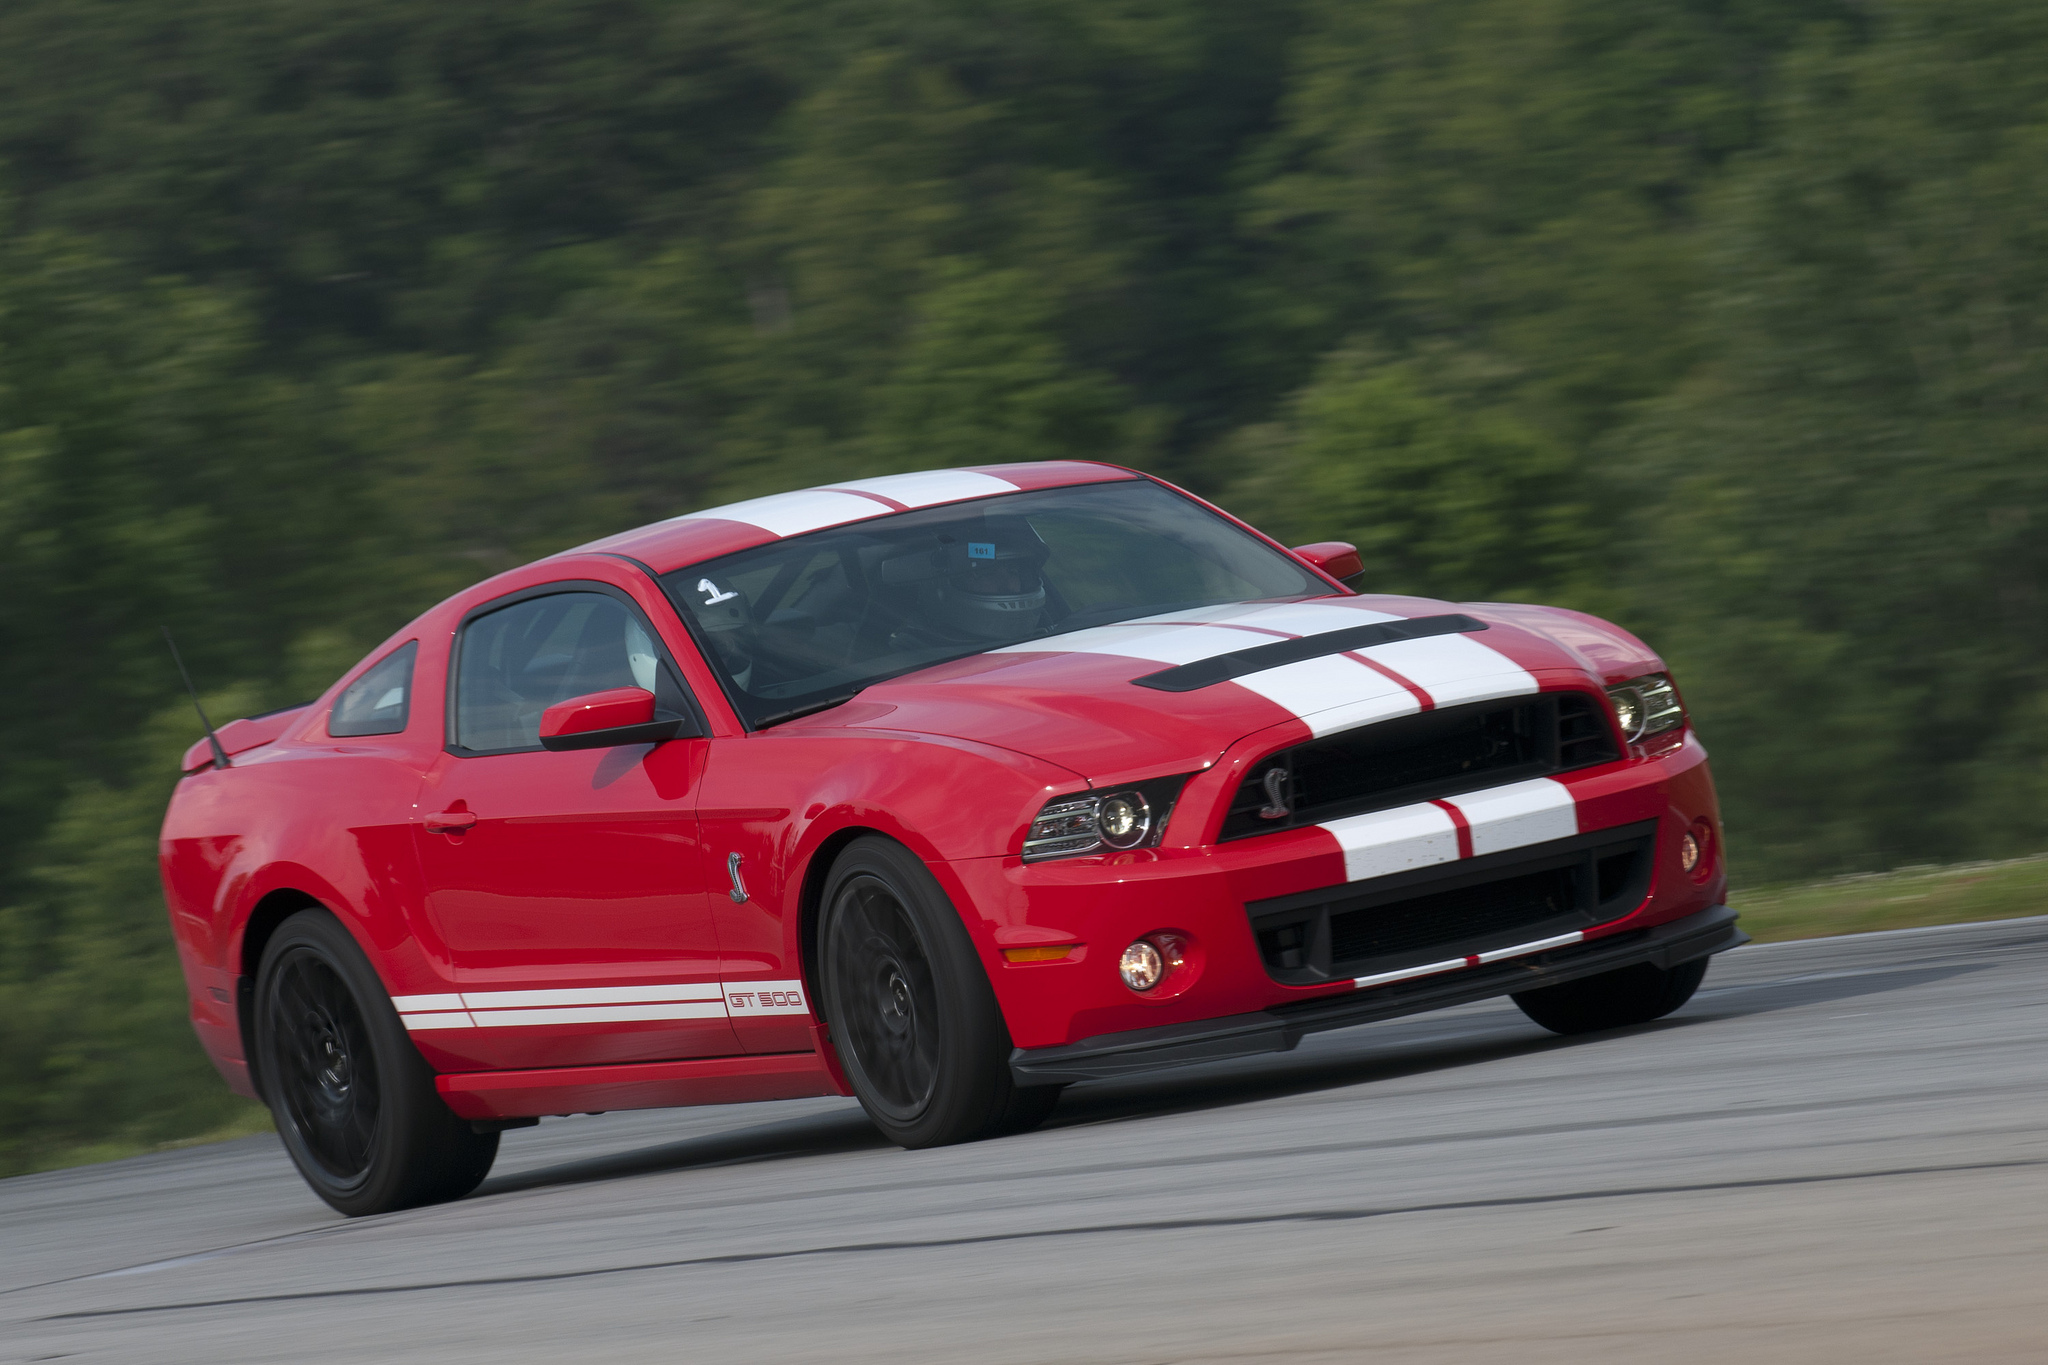 2013 Ford Shelby GT500 supercar muscle cars wallpaper 2048x1365 2048x1365